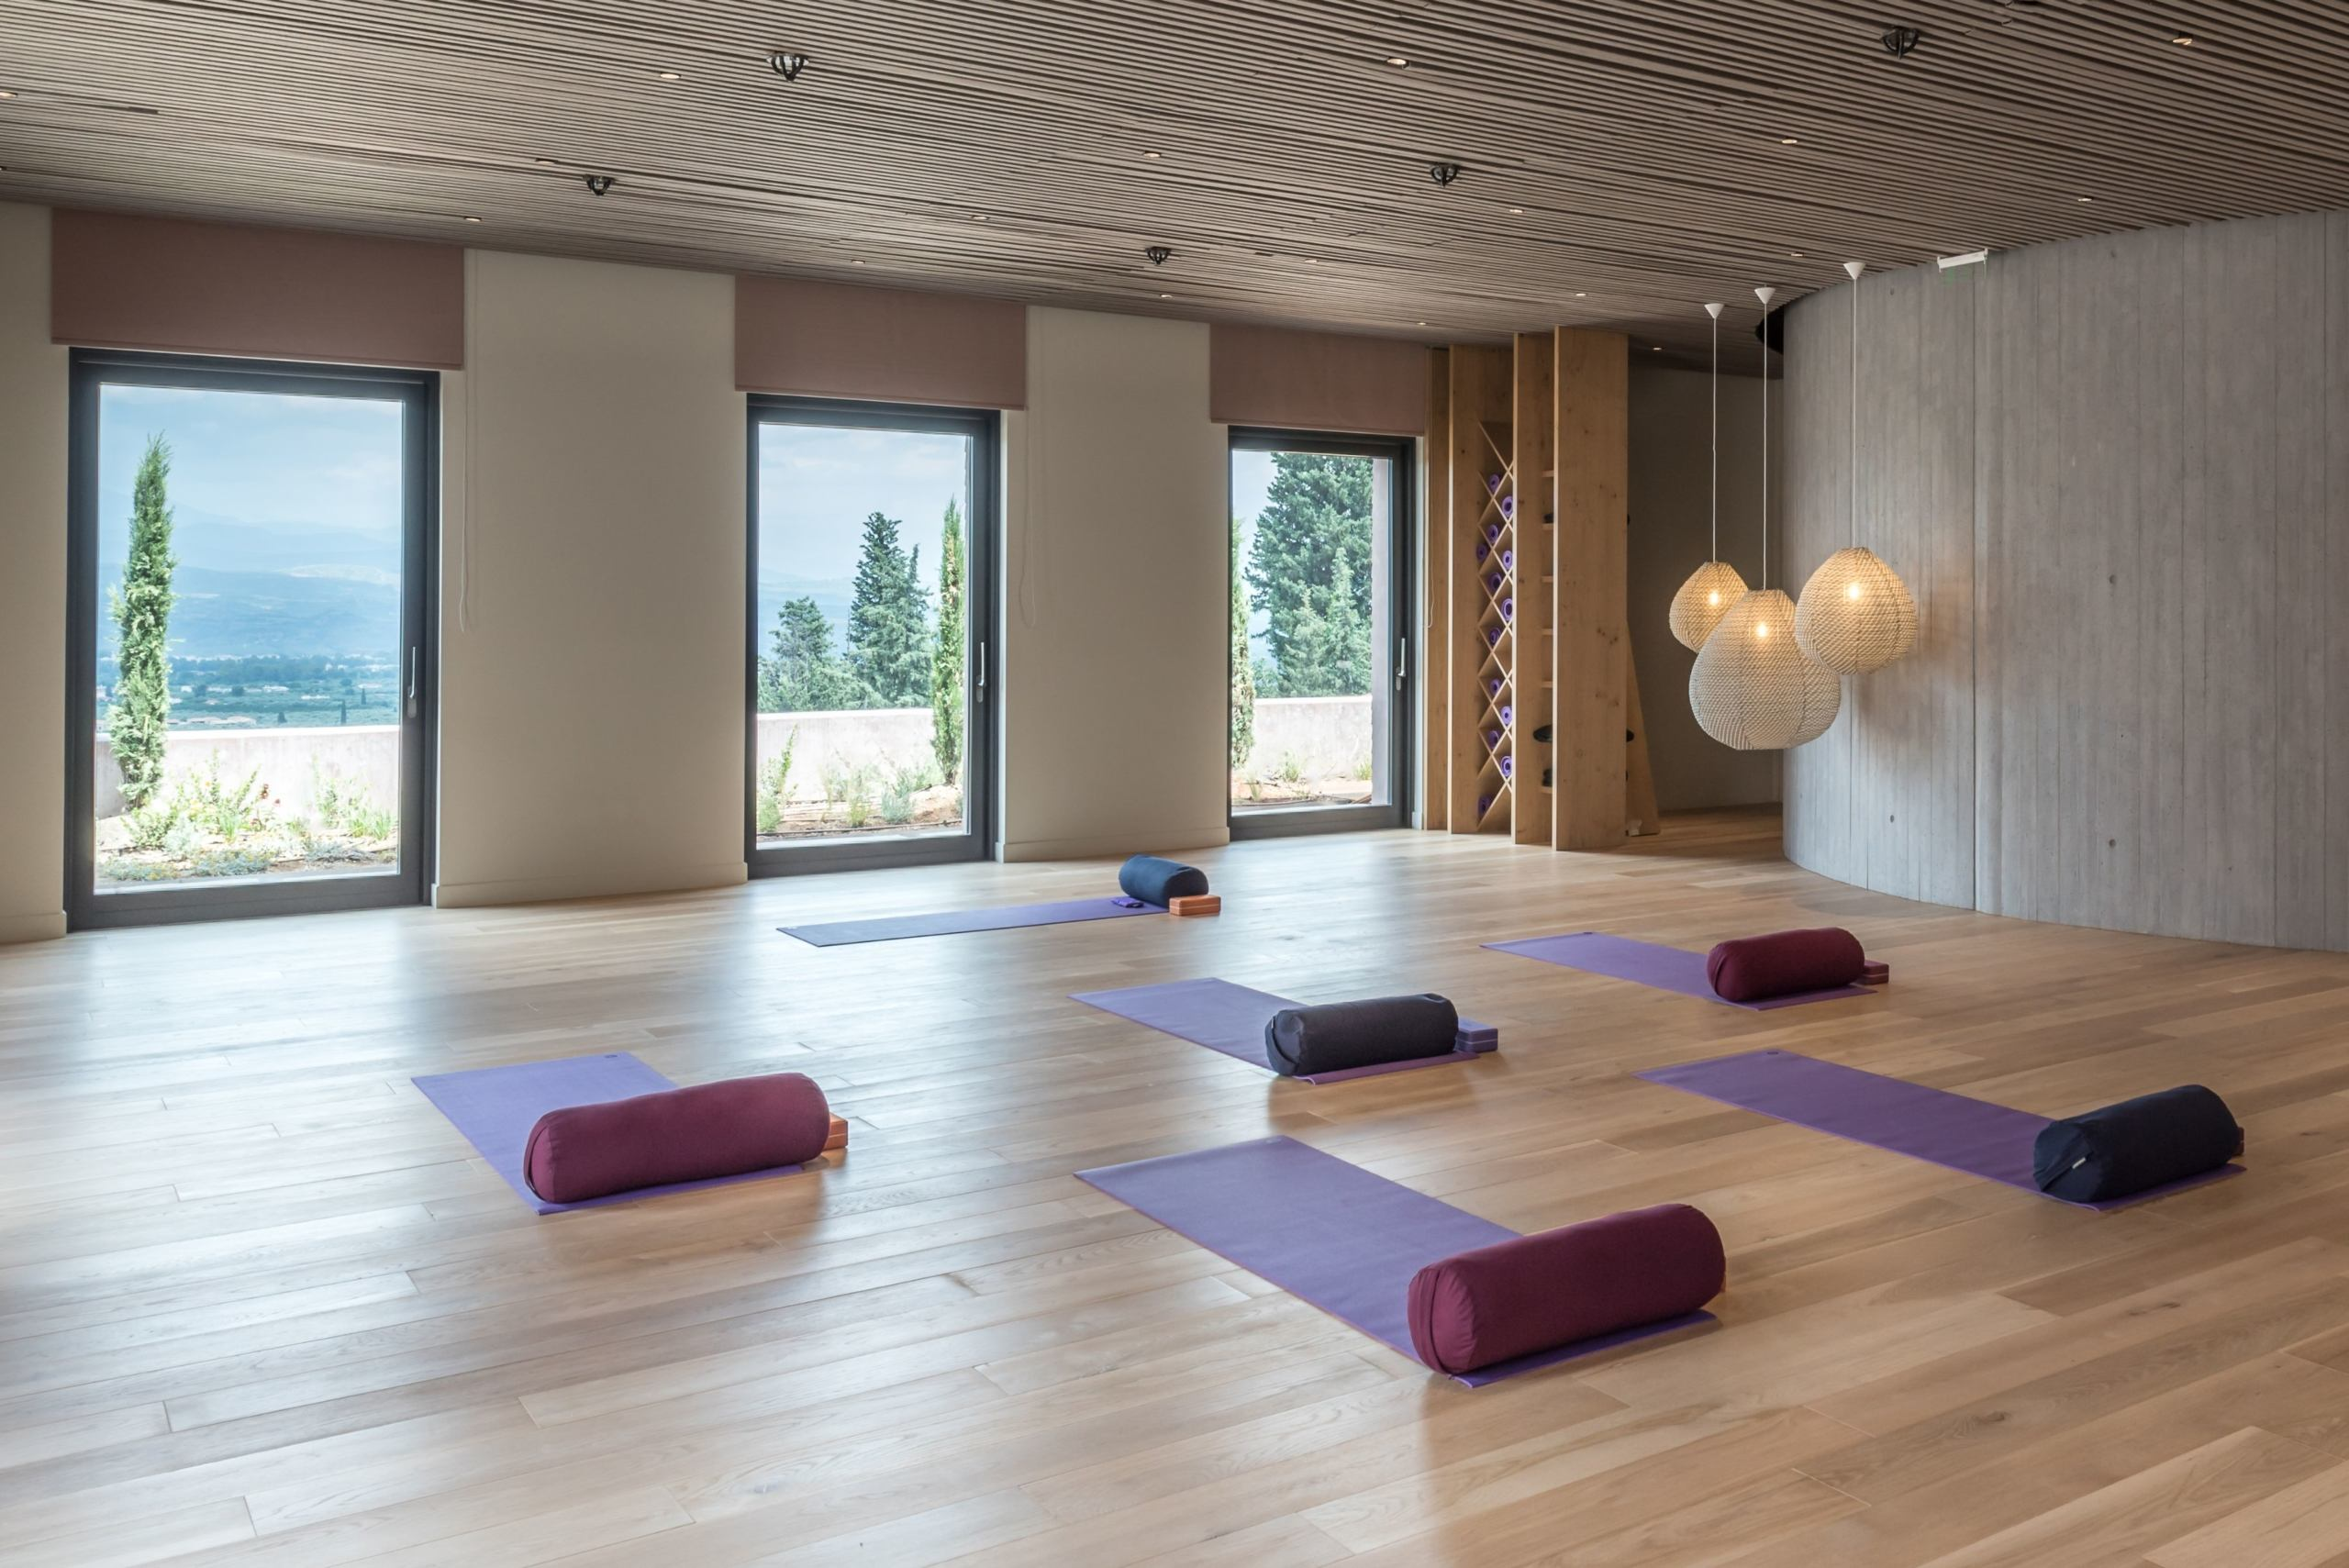 Yoga area with big windows and views across the countryside